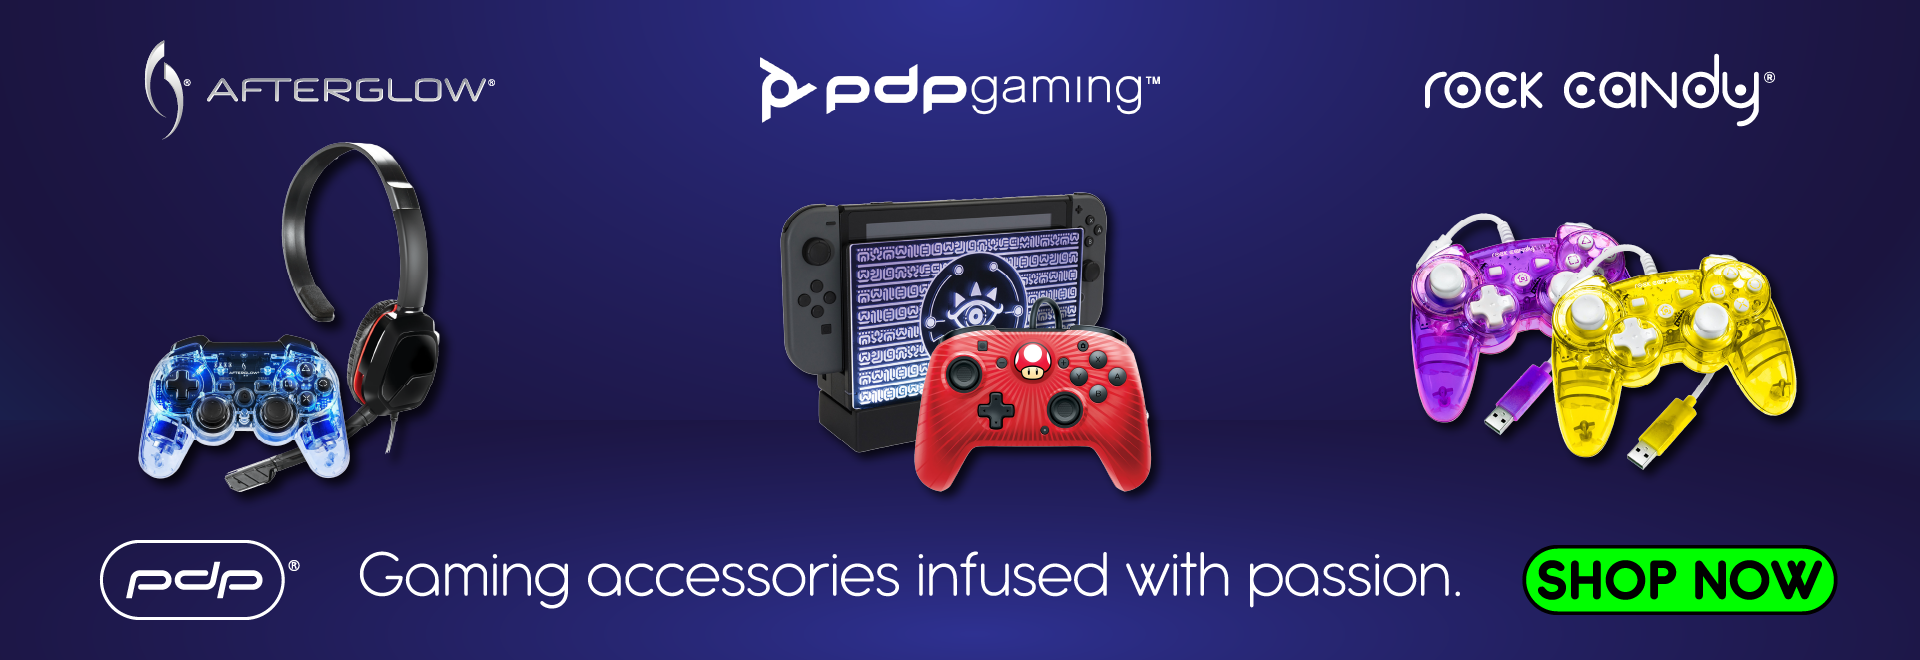 PDP - Gaming Accessories infused with passion